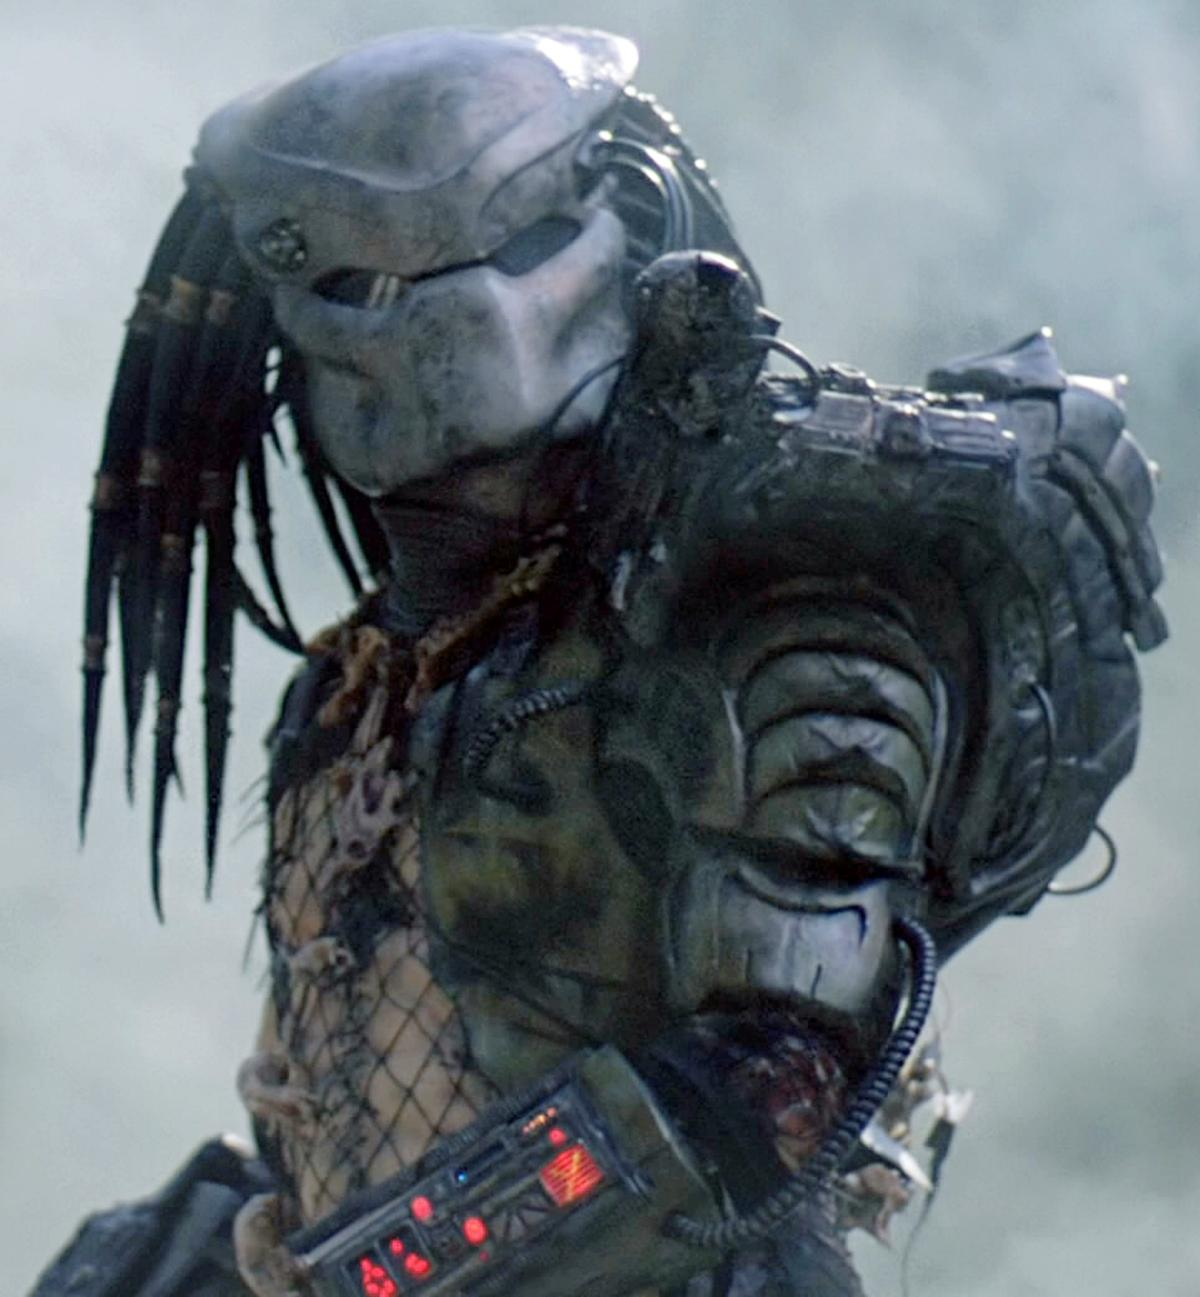 3 15 12 Things You Might Not Have Realised About Predator